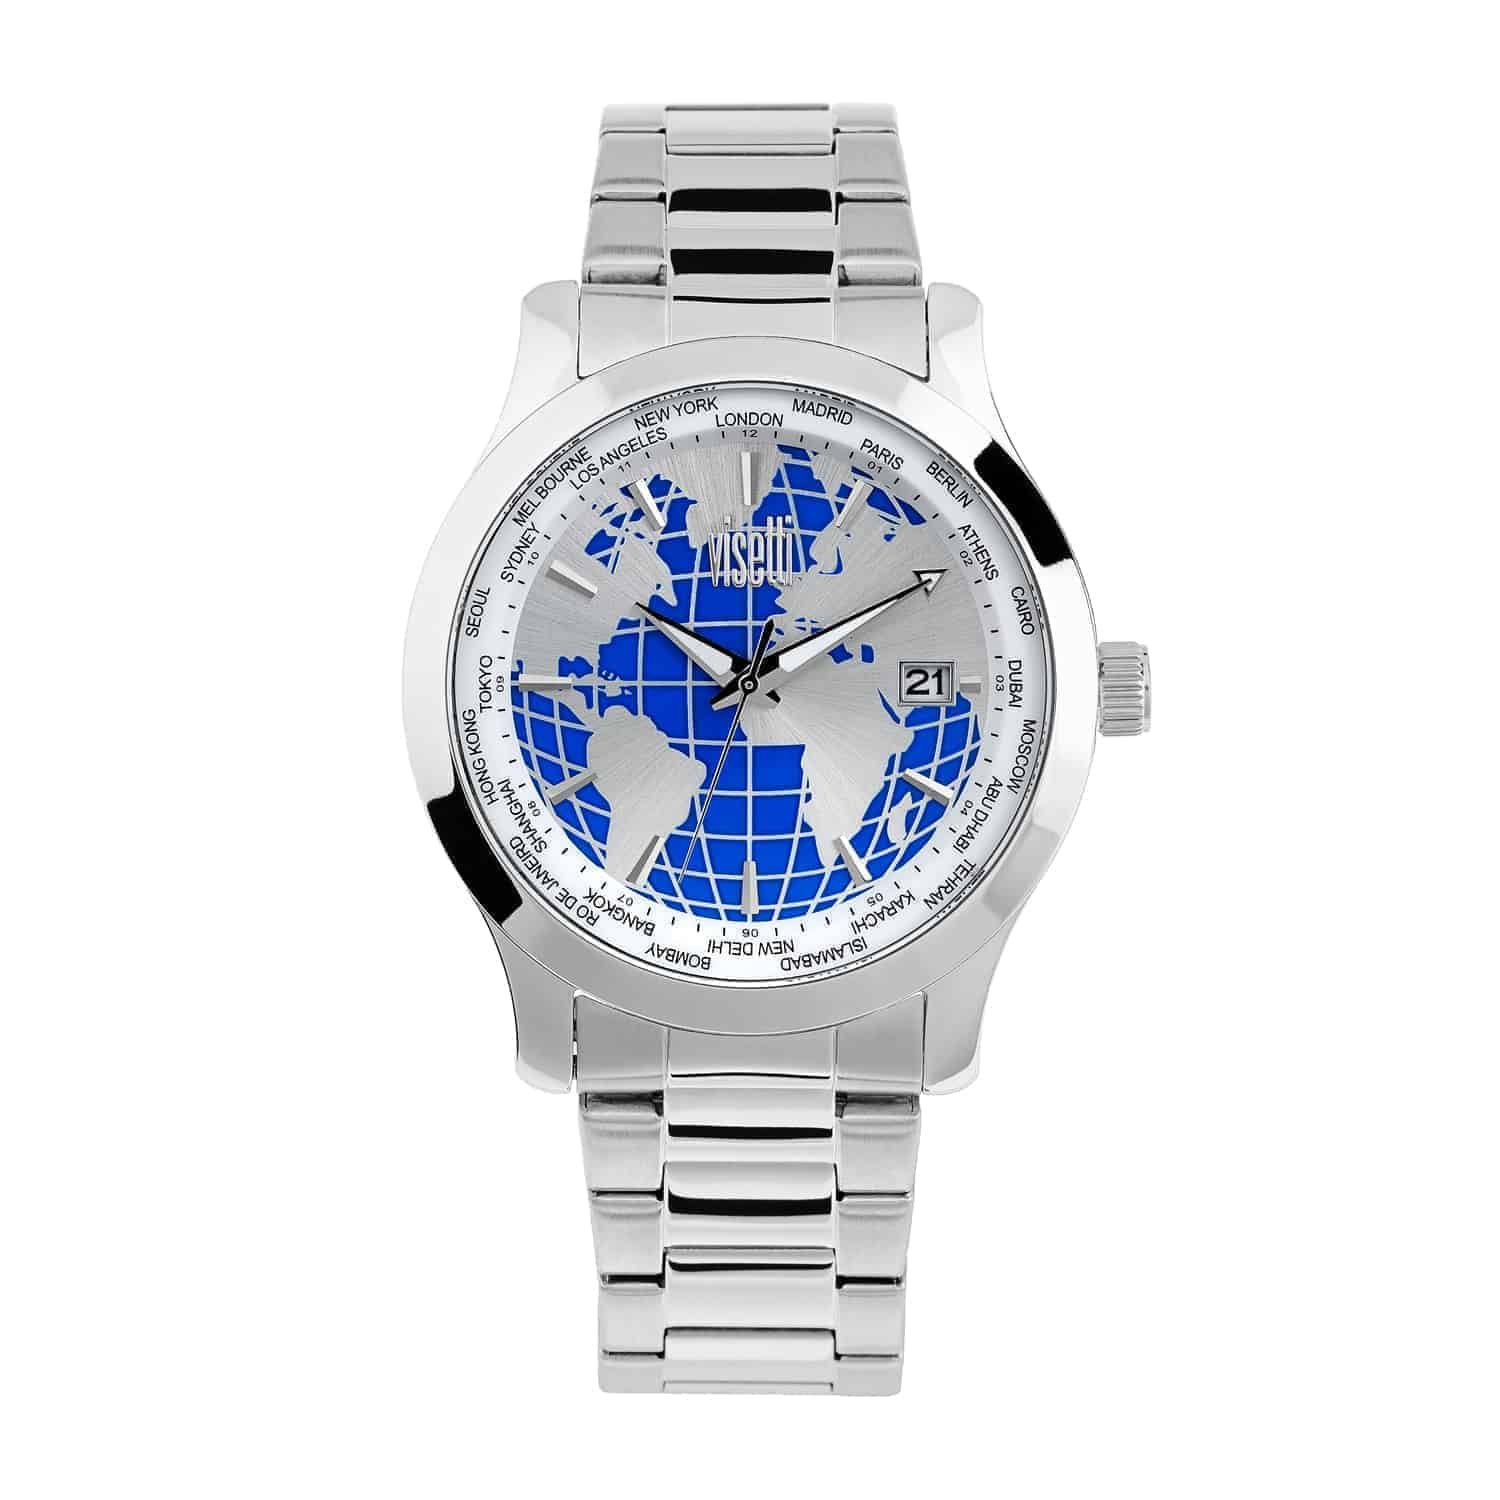 STAINLESS STEEL WATCH STAINLESS STEEL BAND e37fff2a171